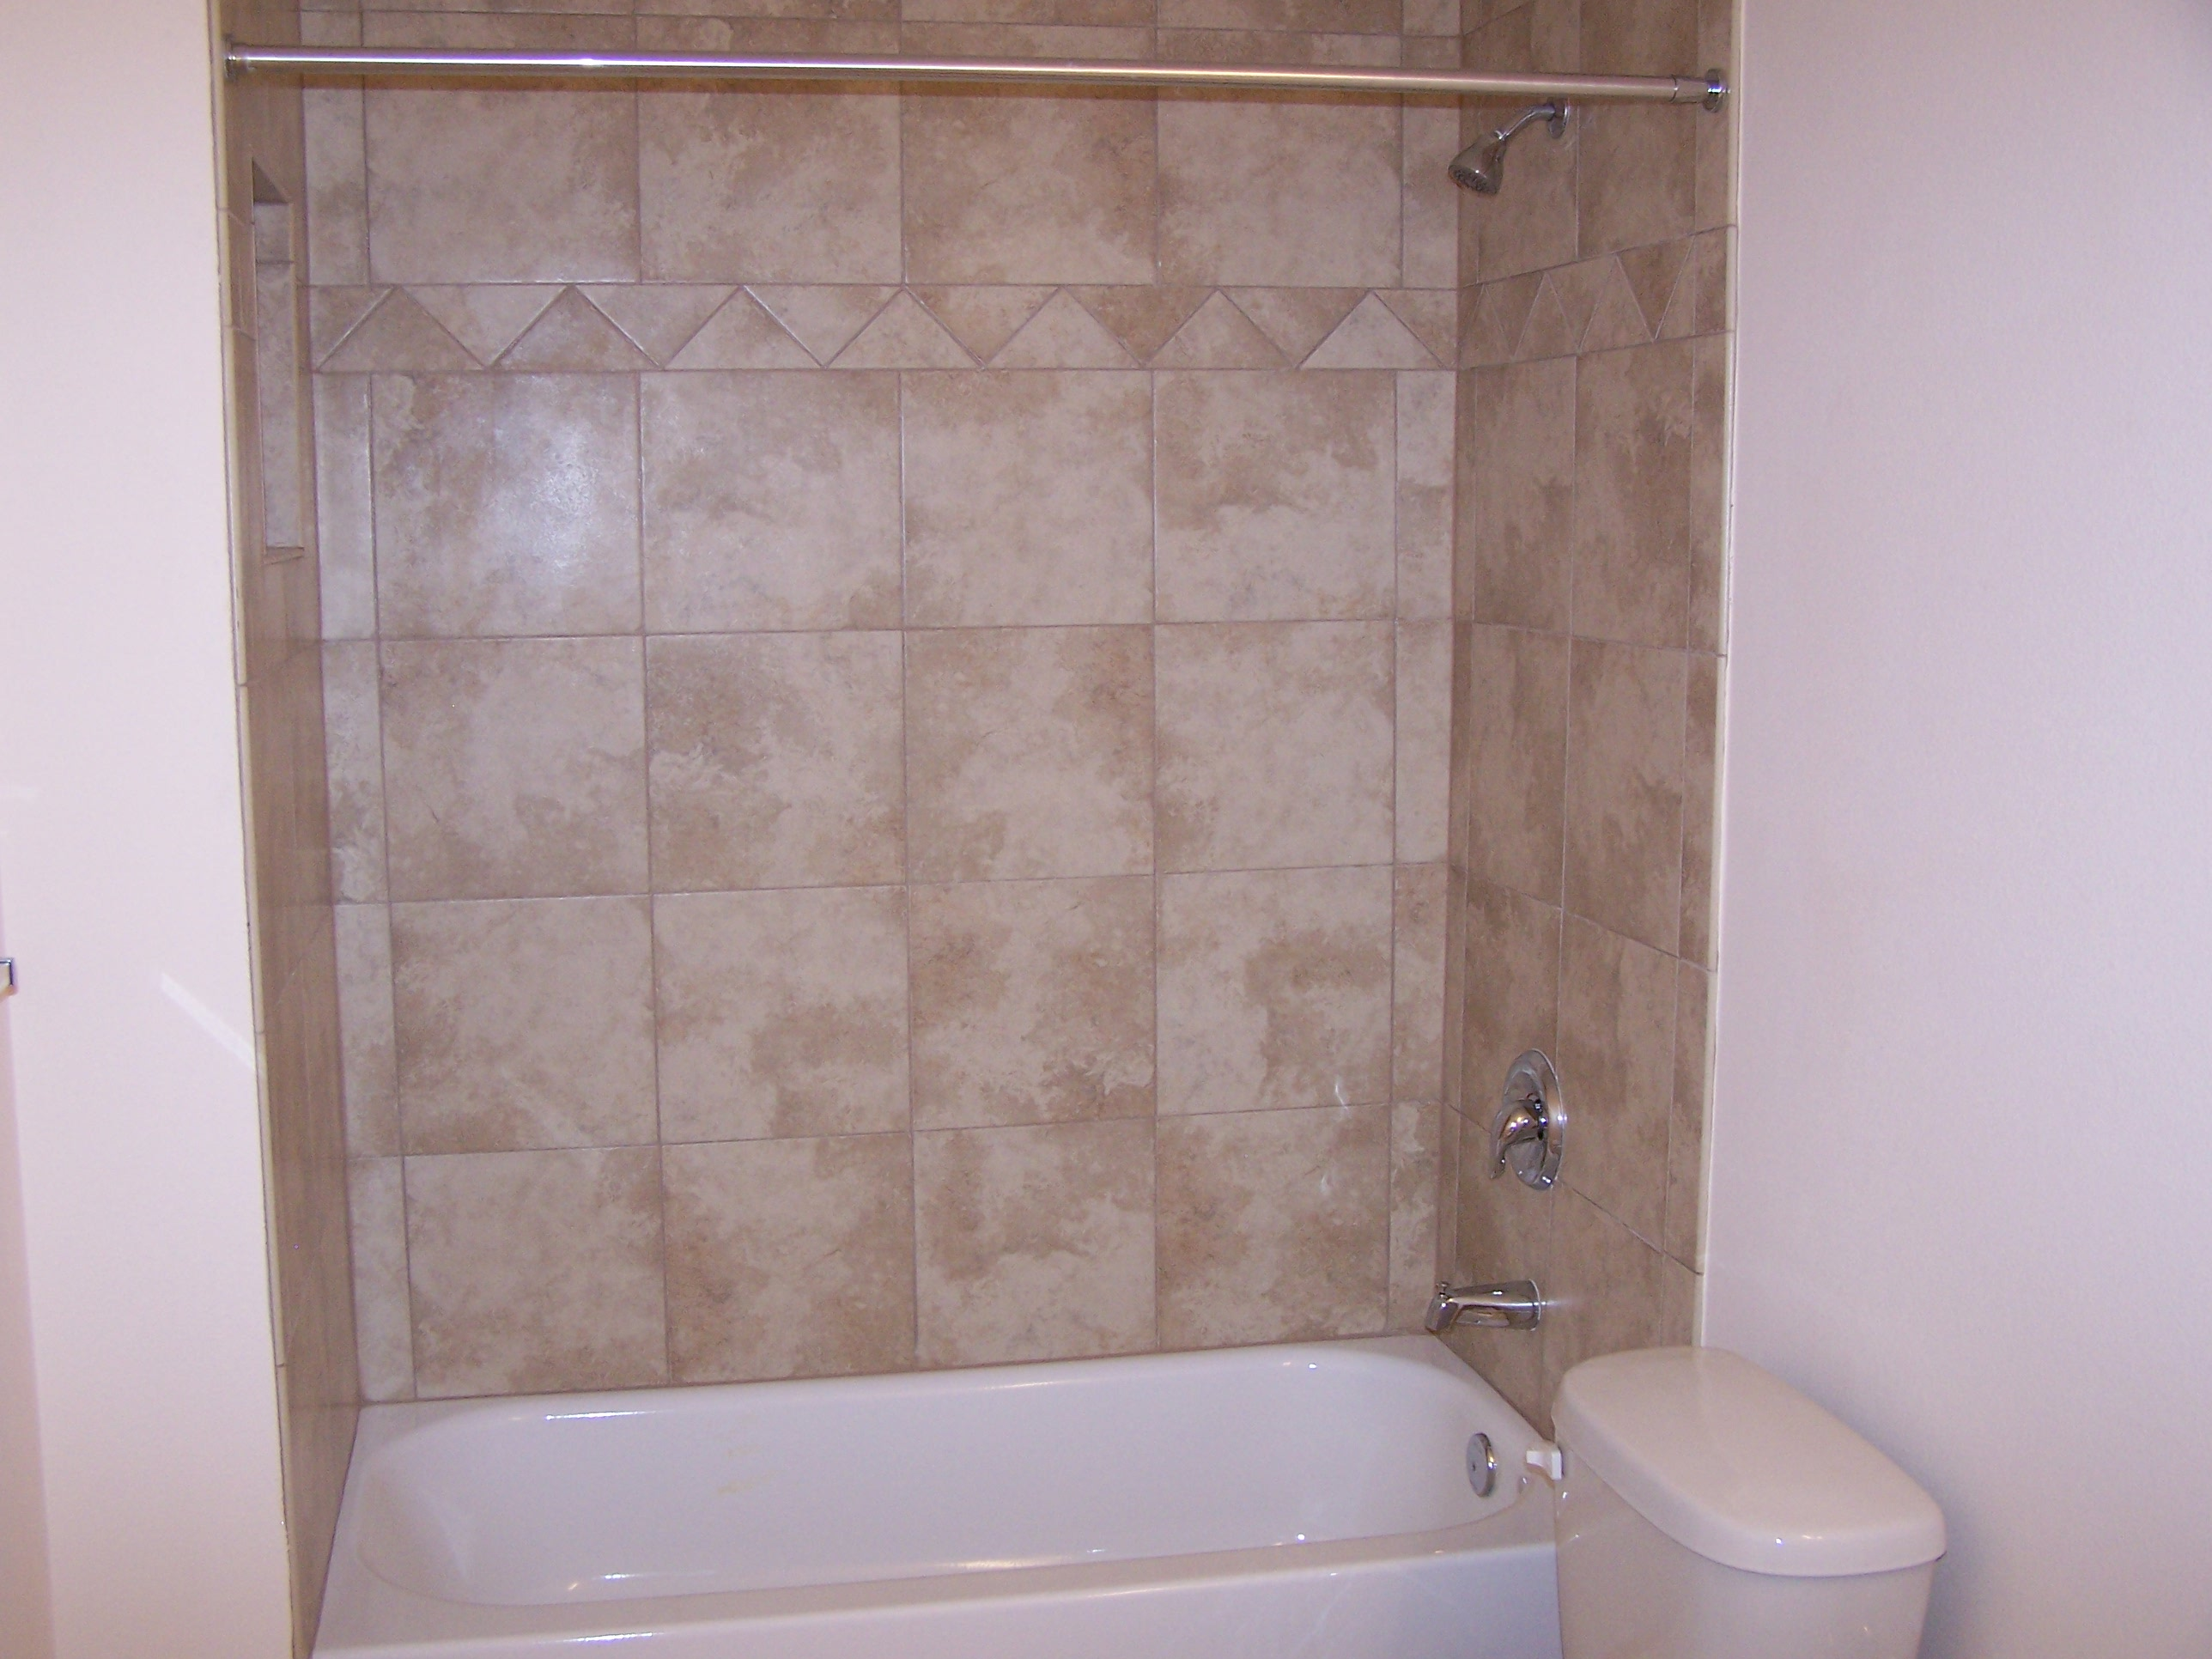 Ceramic Tile Decorative Bath Enclosure